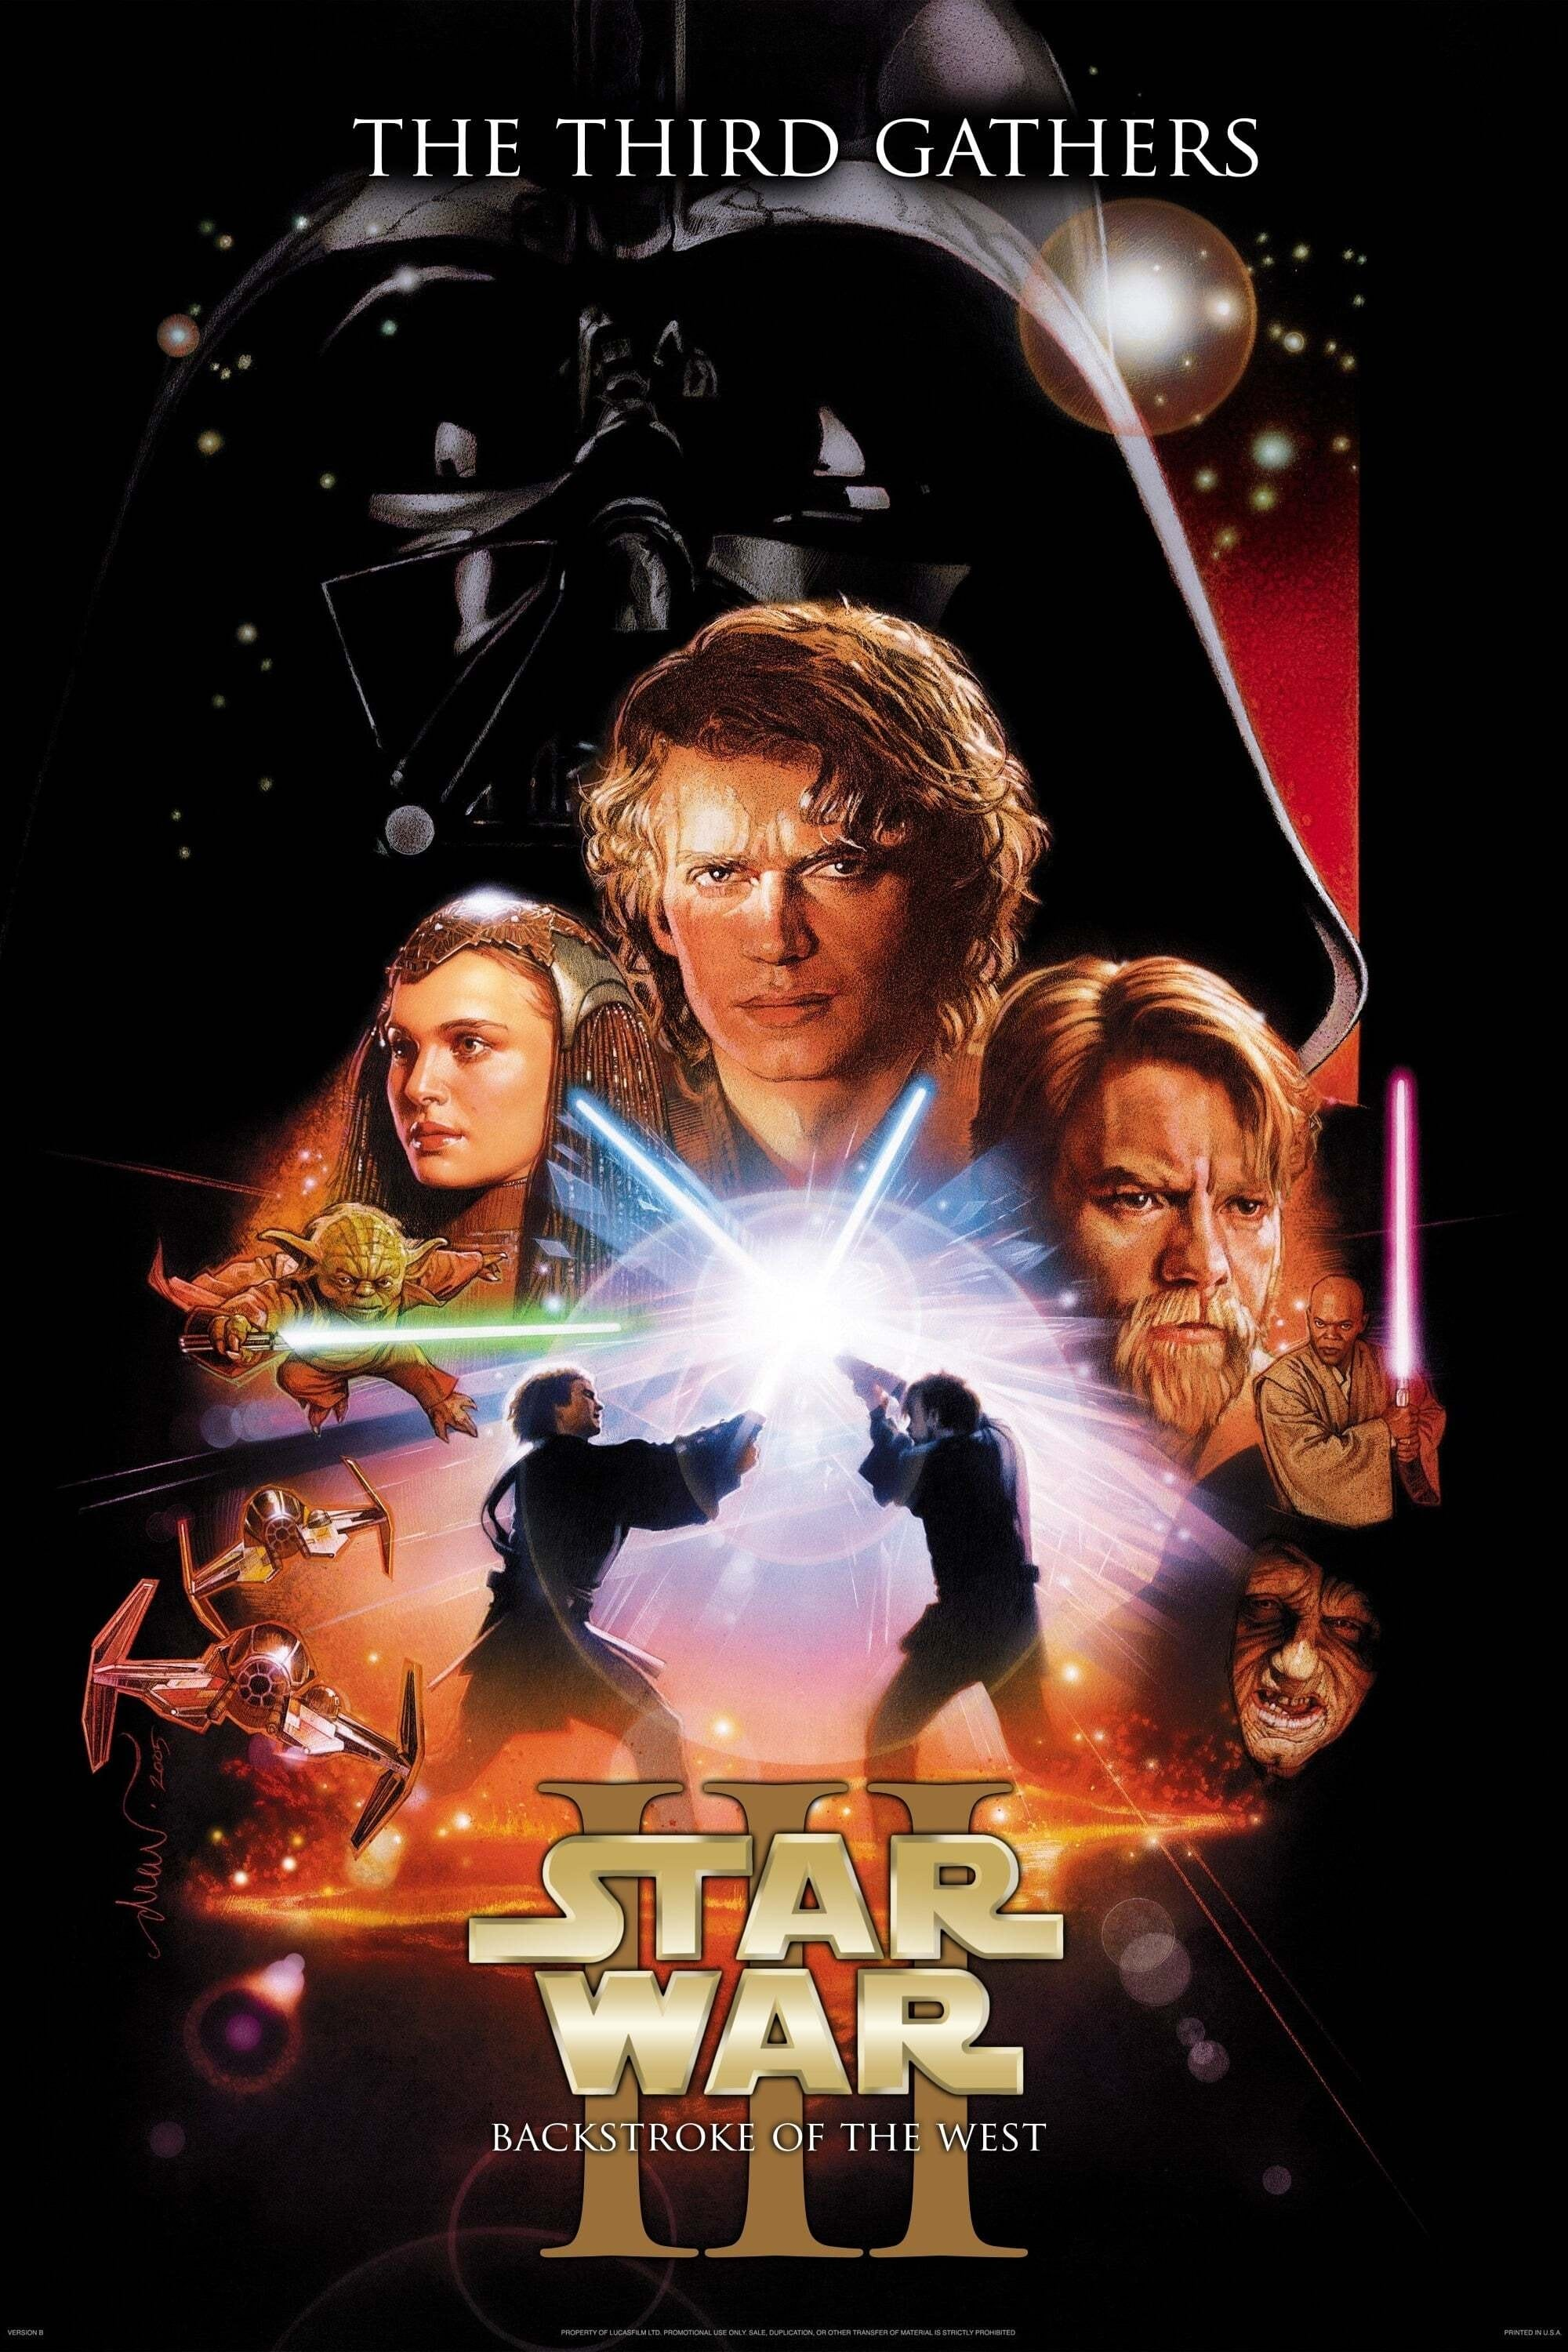 Star War: The Third Gathers: The Backstroke of the West (2009)